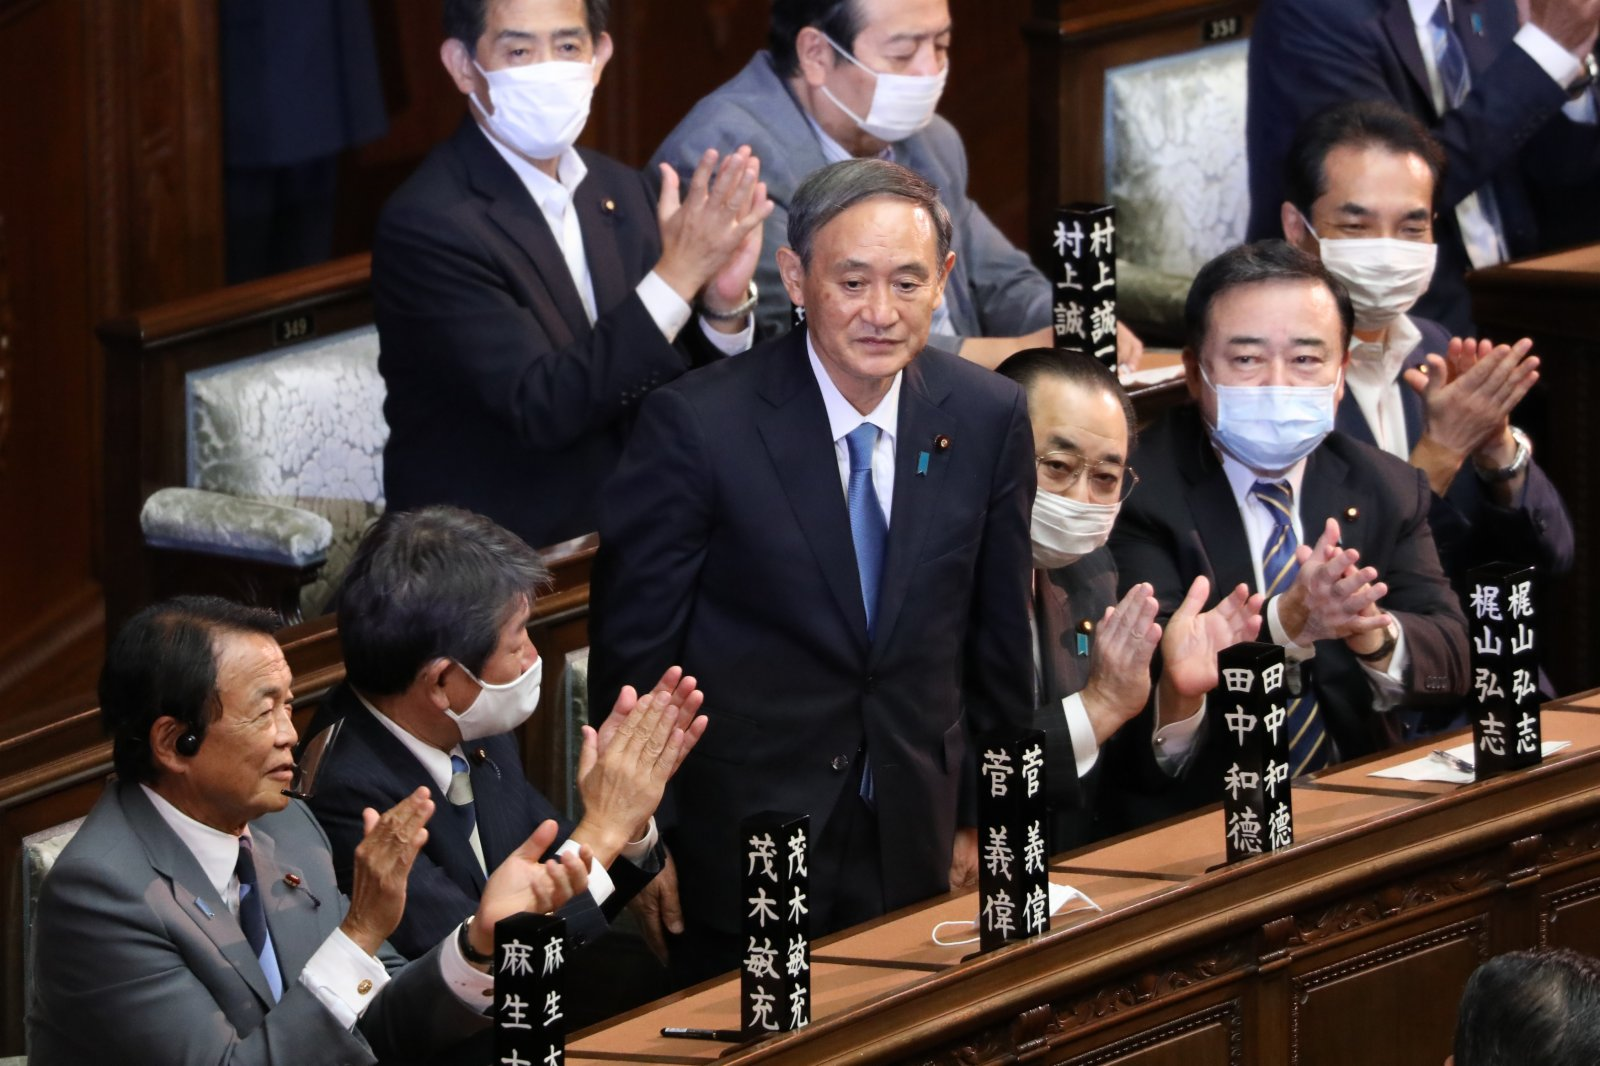 Support for Kan's cabinet fell to 33%